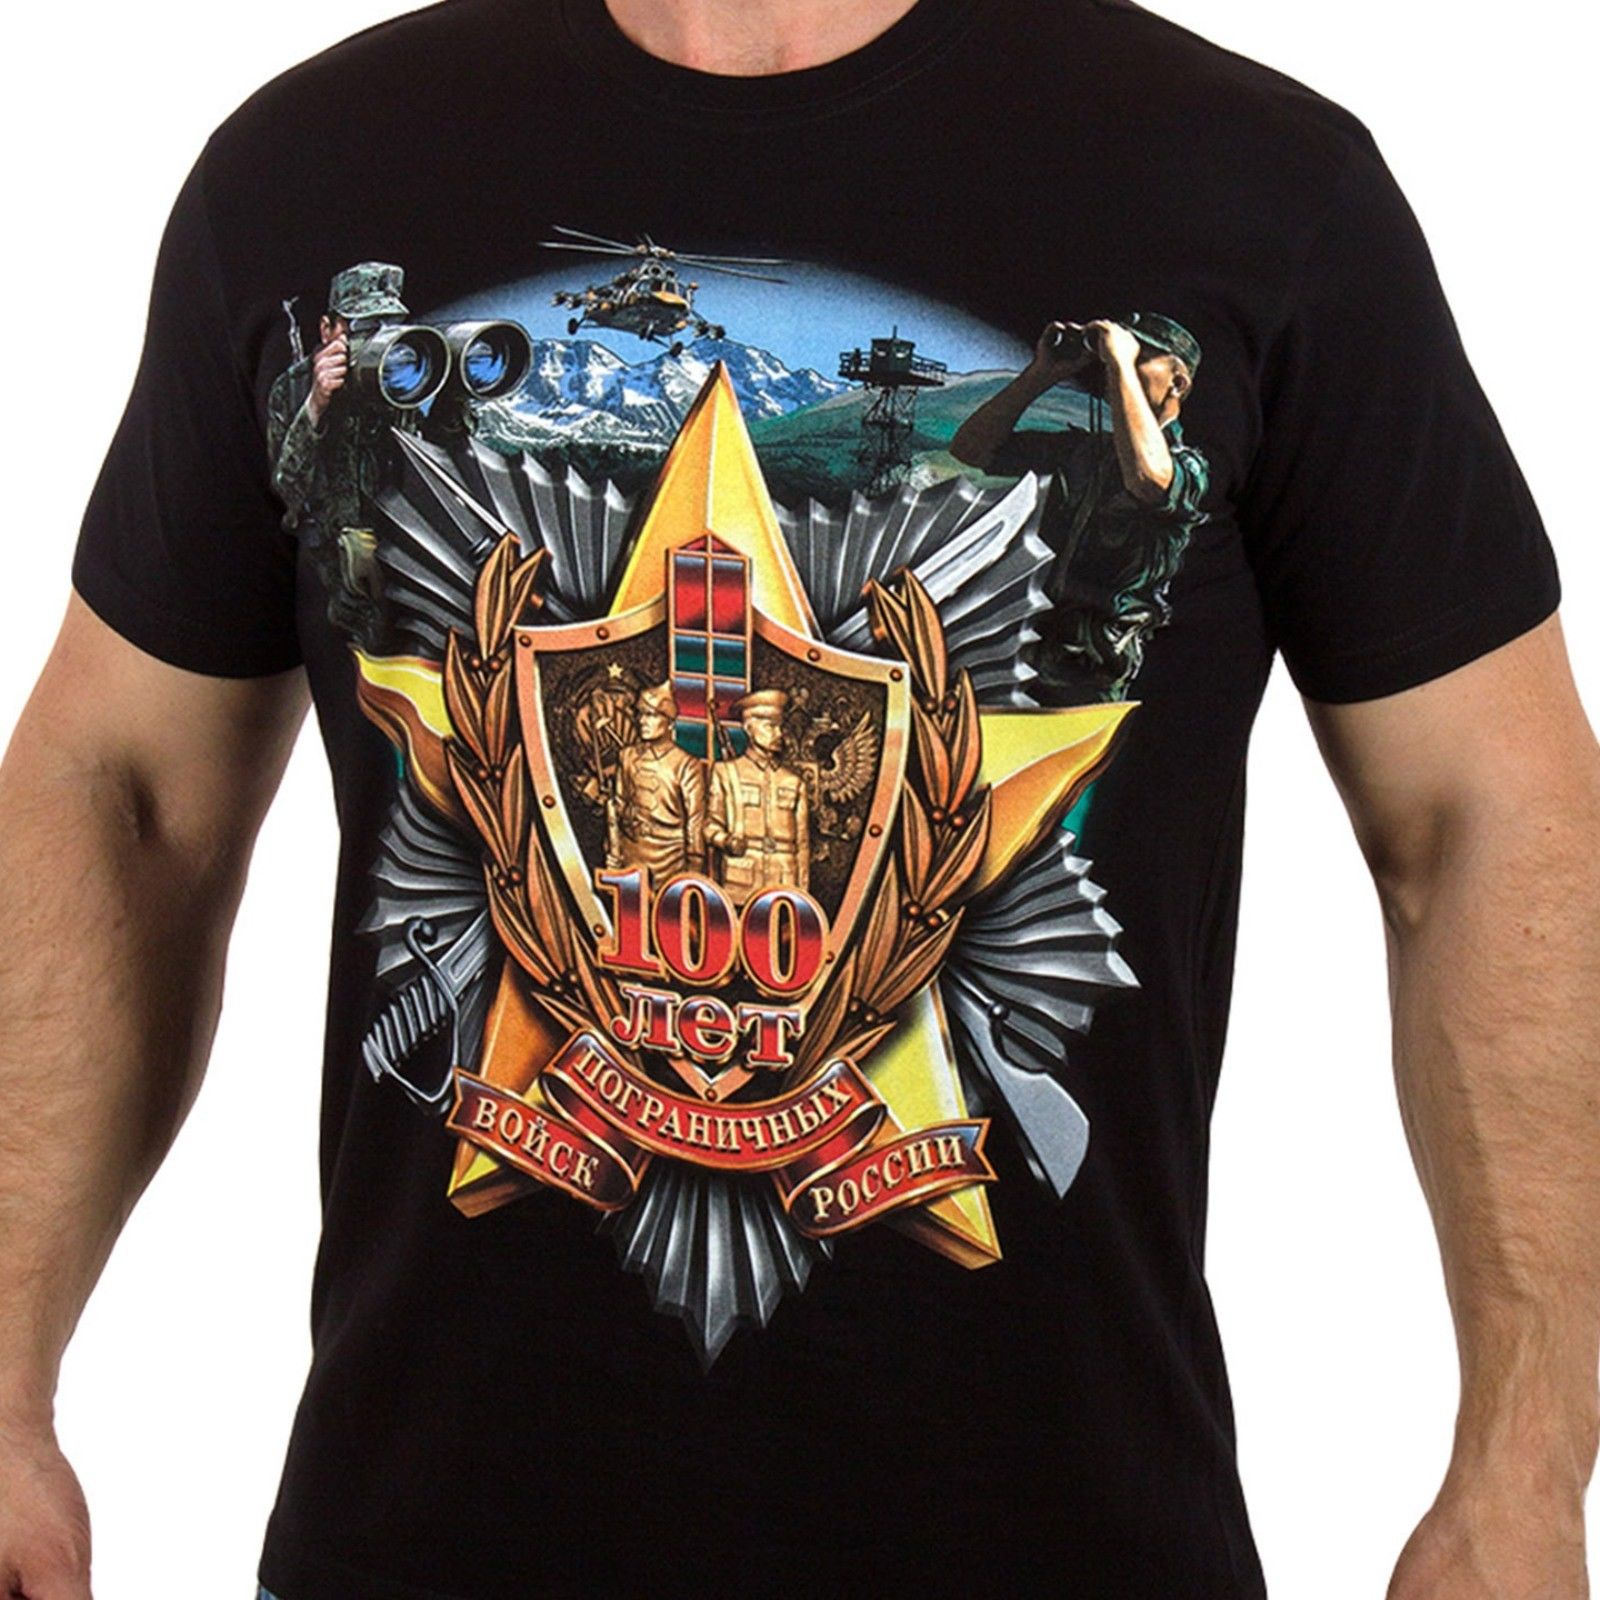 Men SUPER New.T-shirt 100 years of the Border Troops of Russia